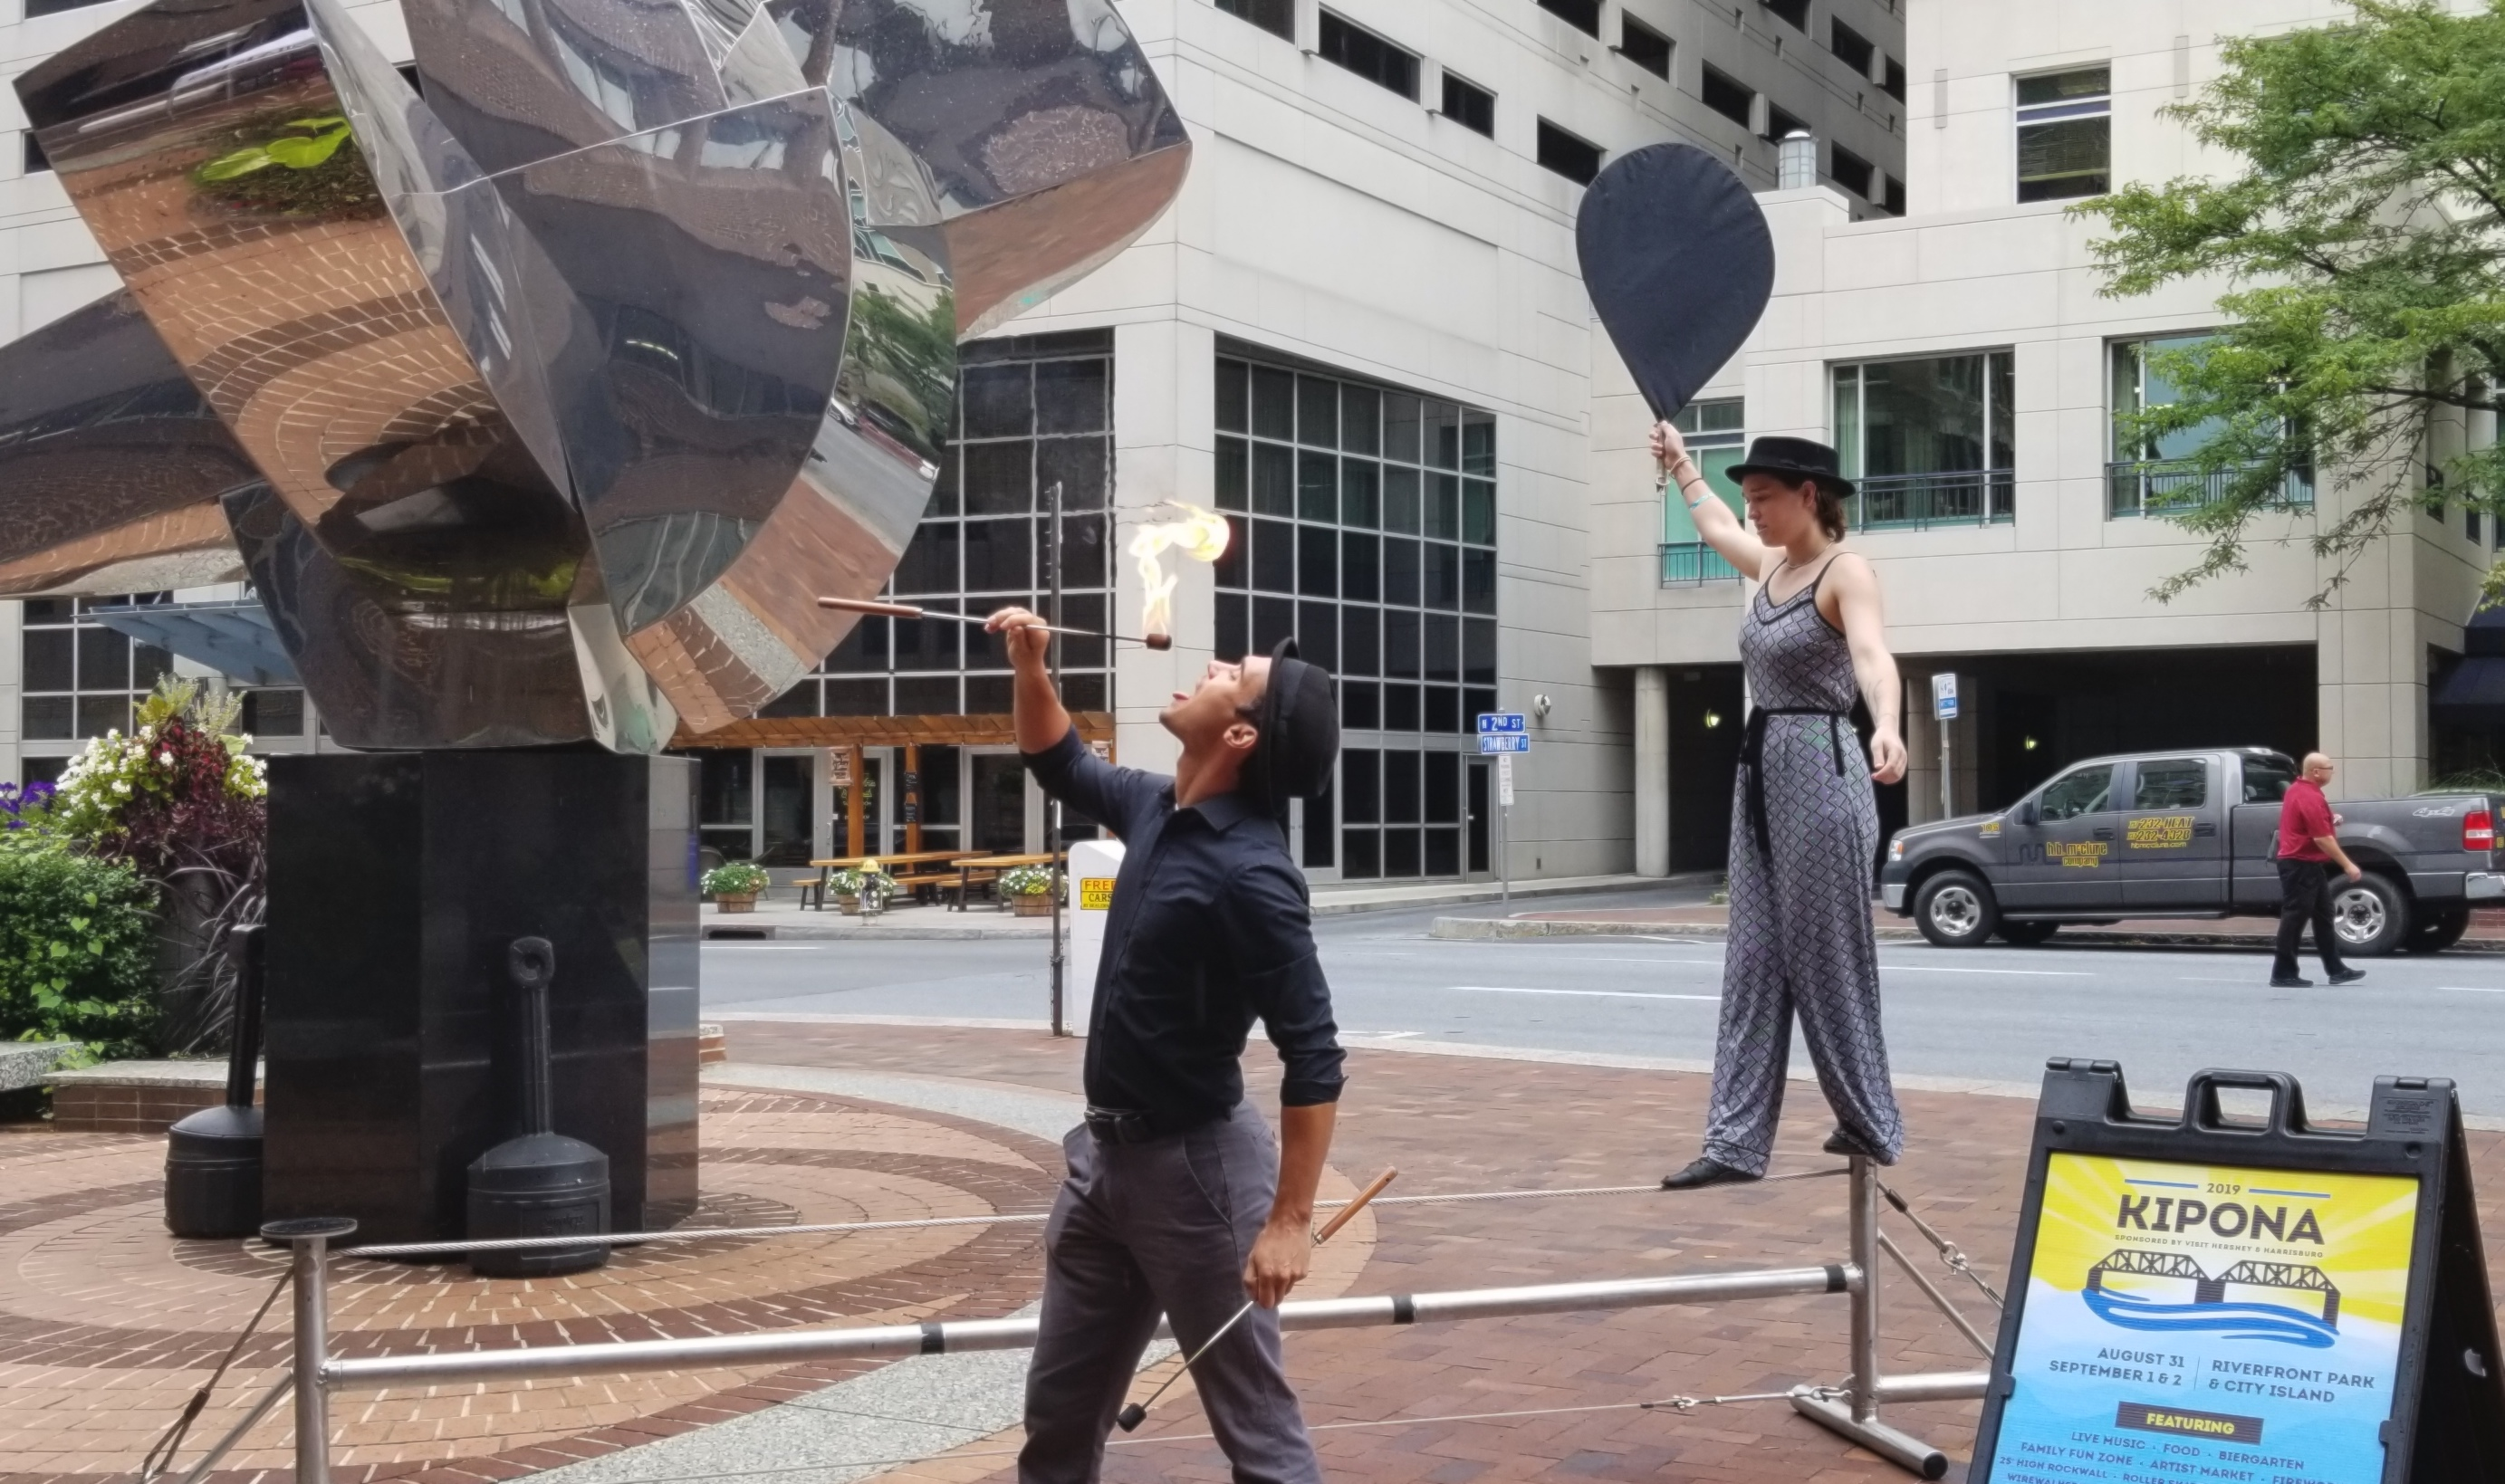 Fire breather, tightrope walker give preview of Kipona Festival outside of Harrisburg's government center